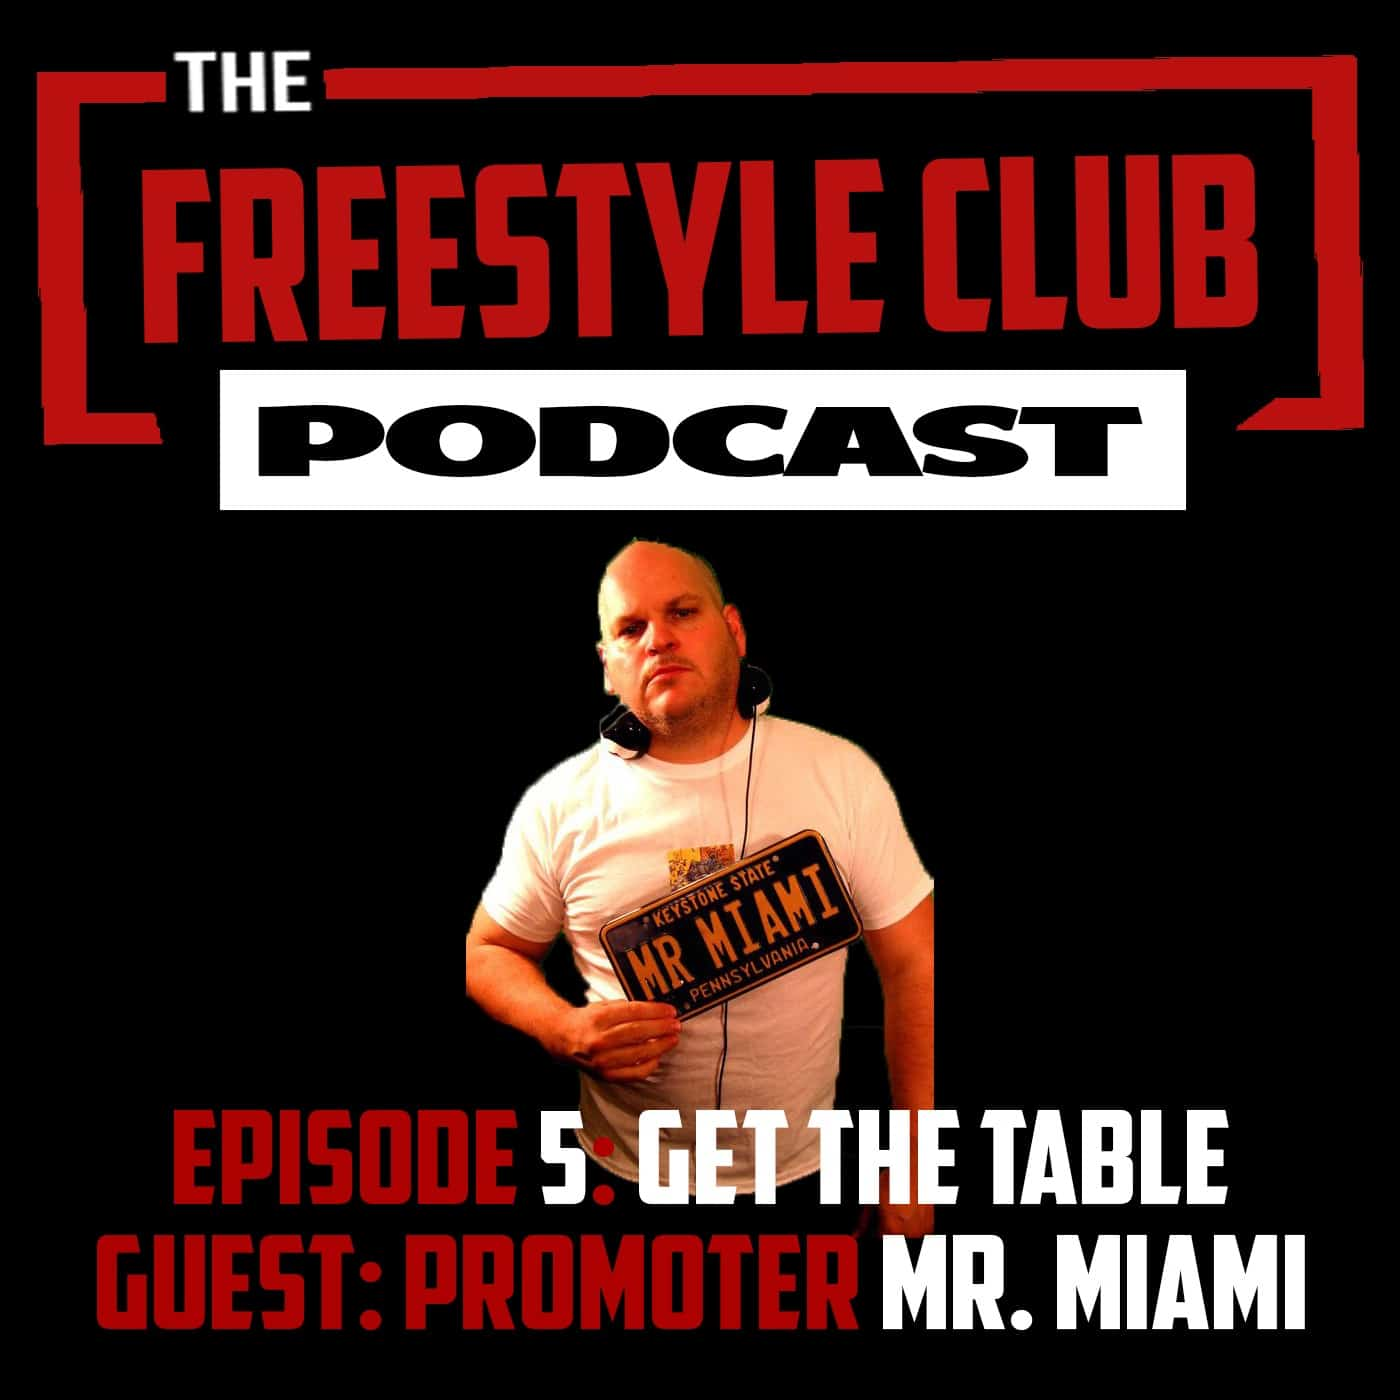 Mr. Miami - The Freestyle Club